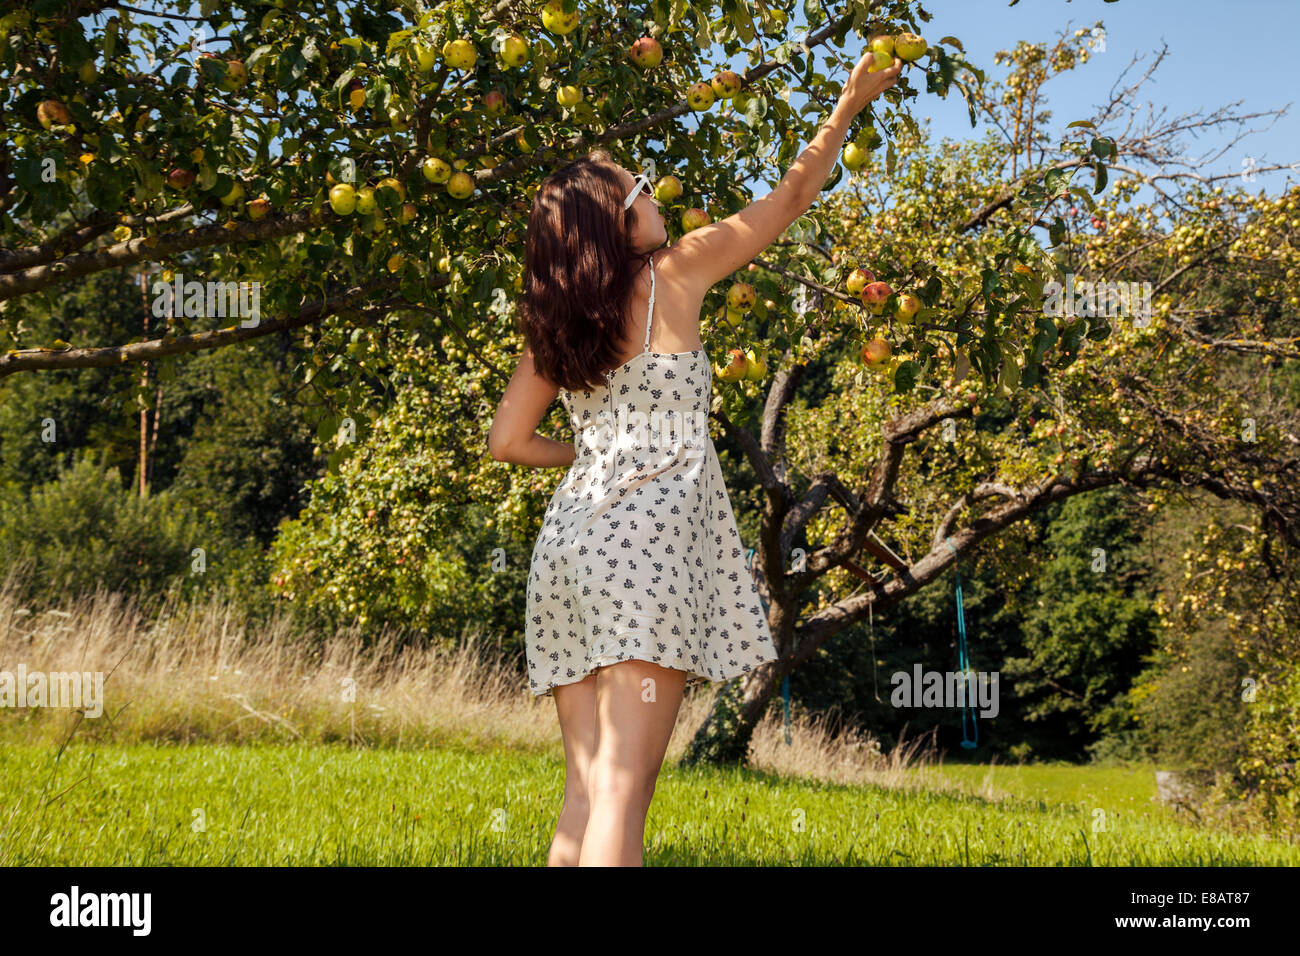 Young Woman picking forme apple tree Photo Stock